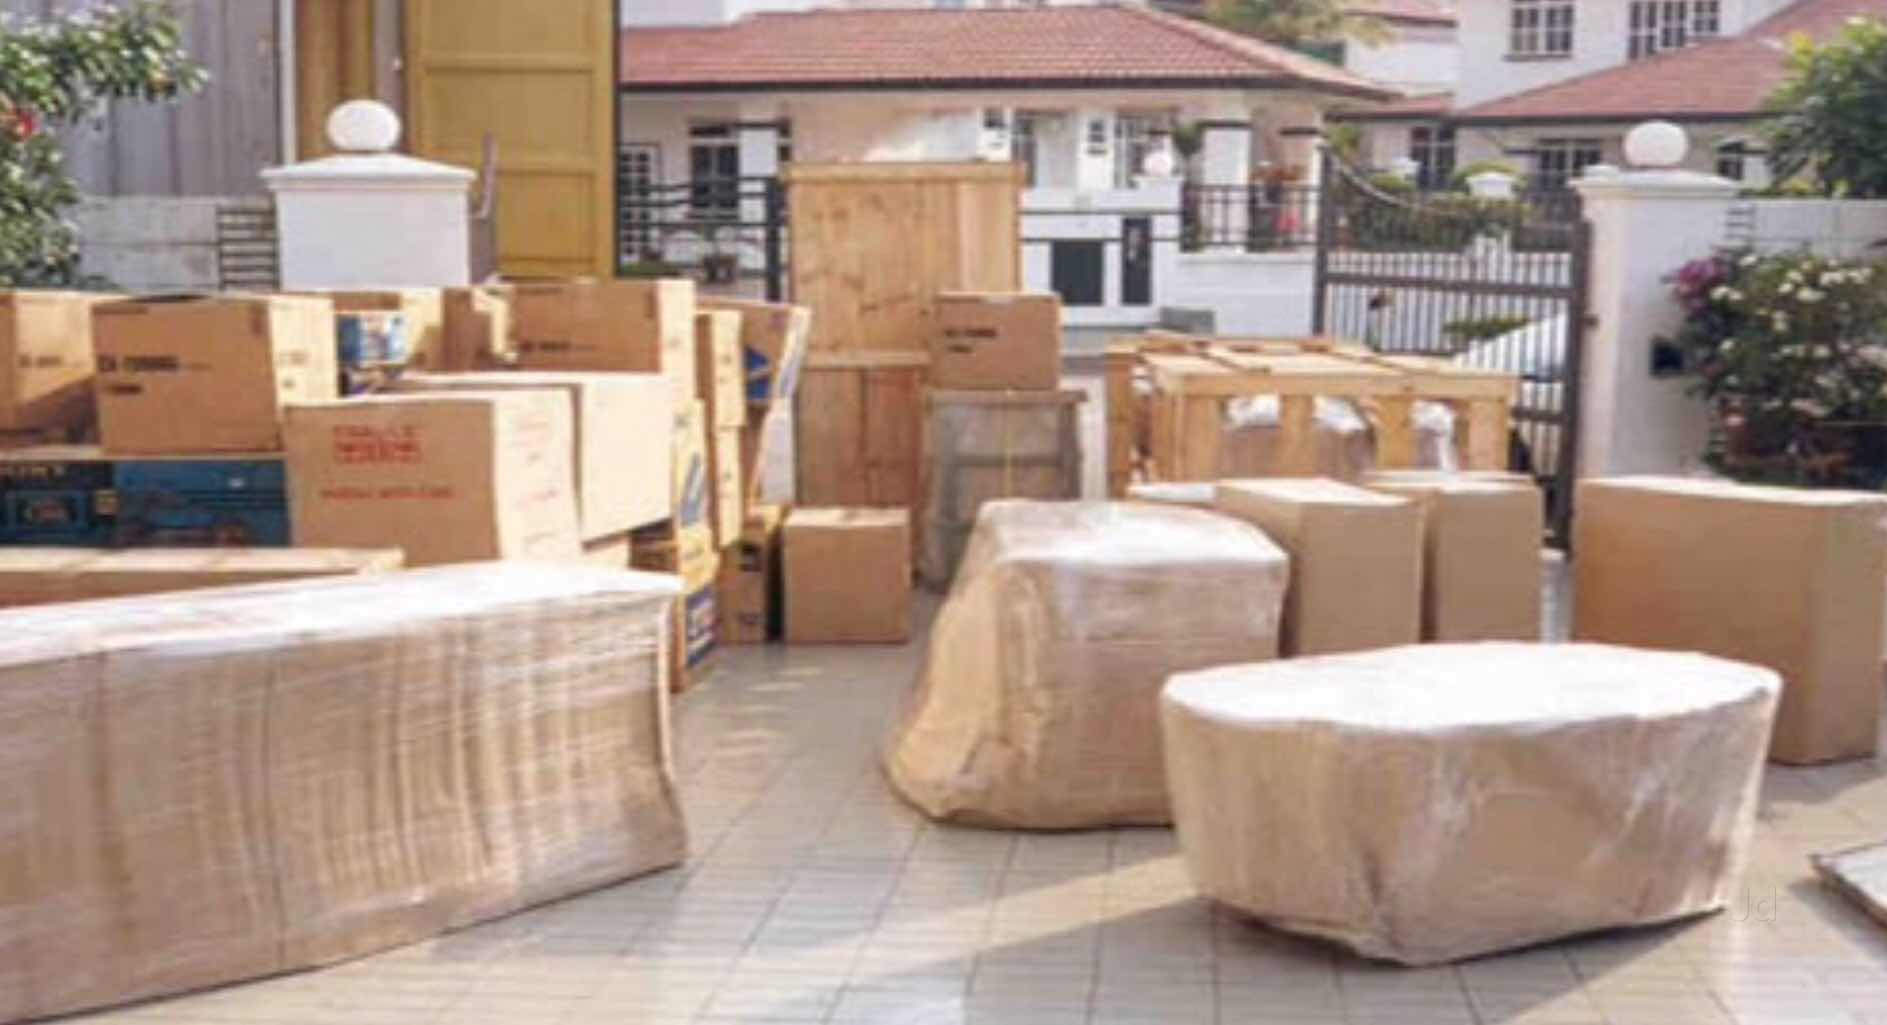 Reliable Cargo Relocation Packers Movers